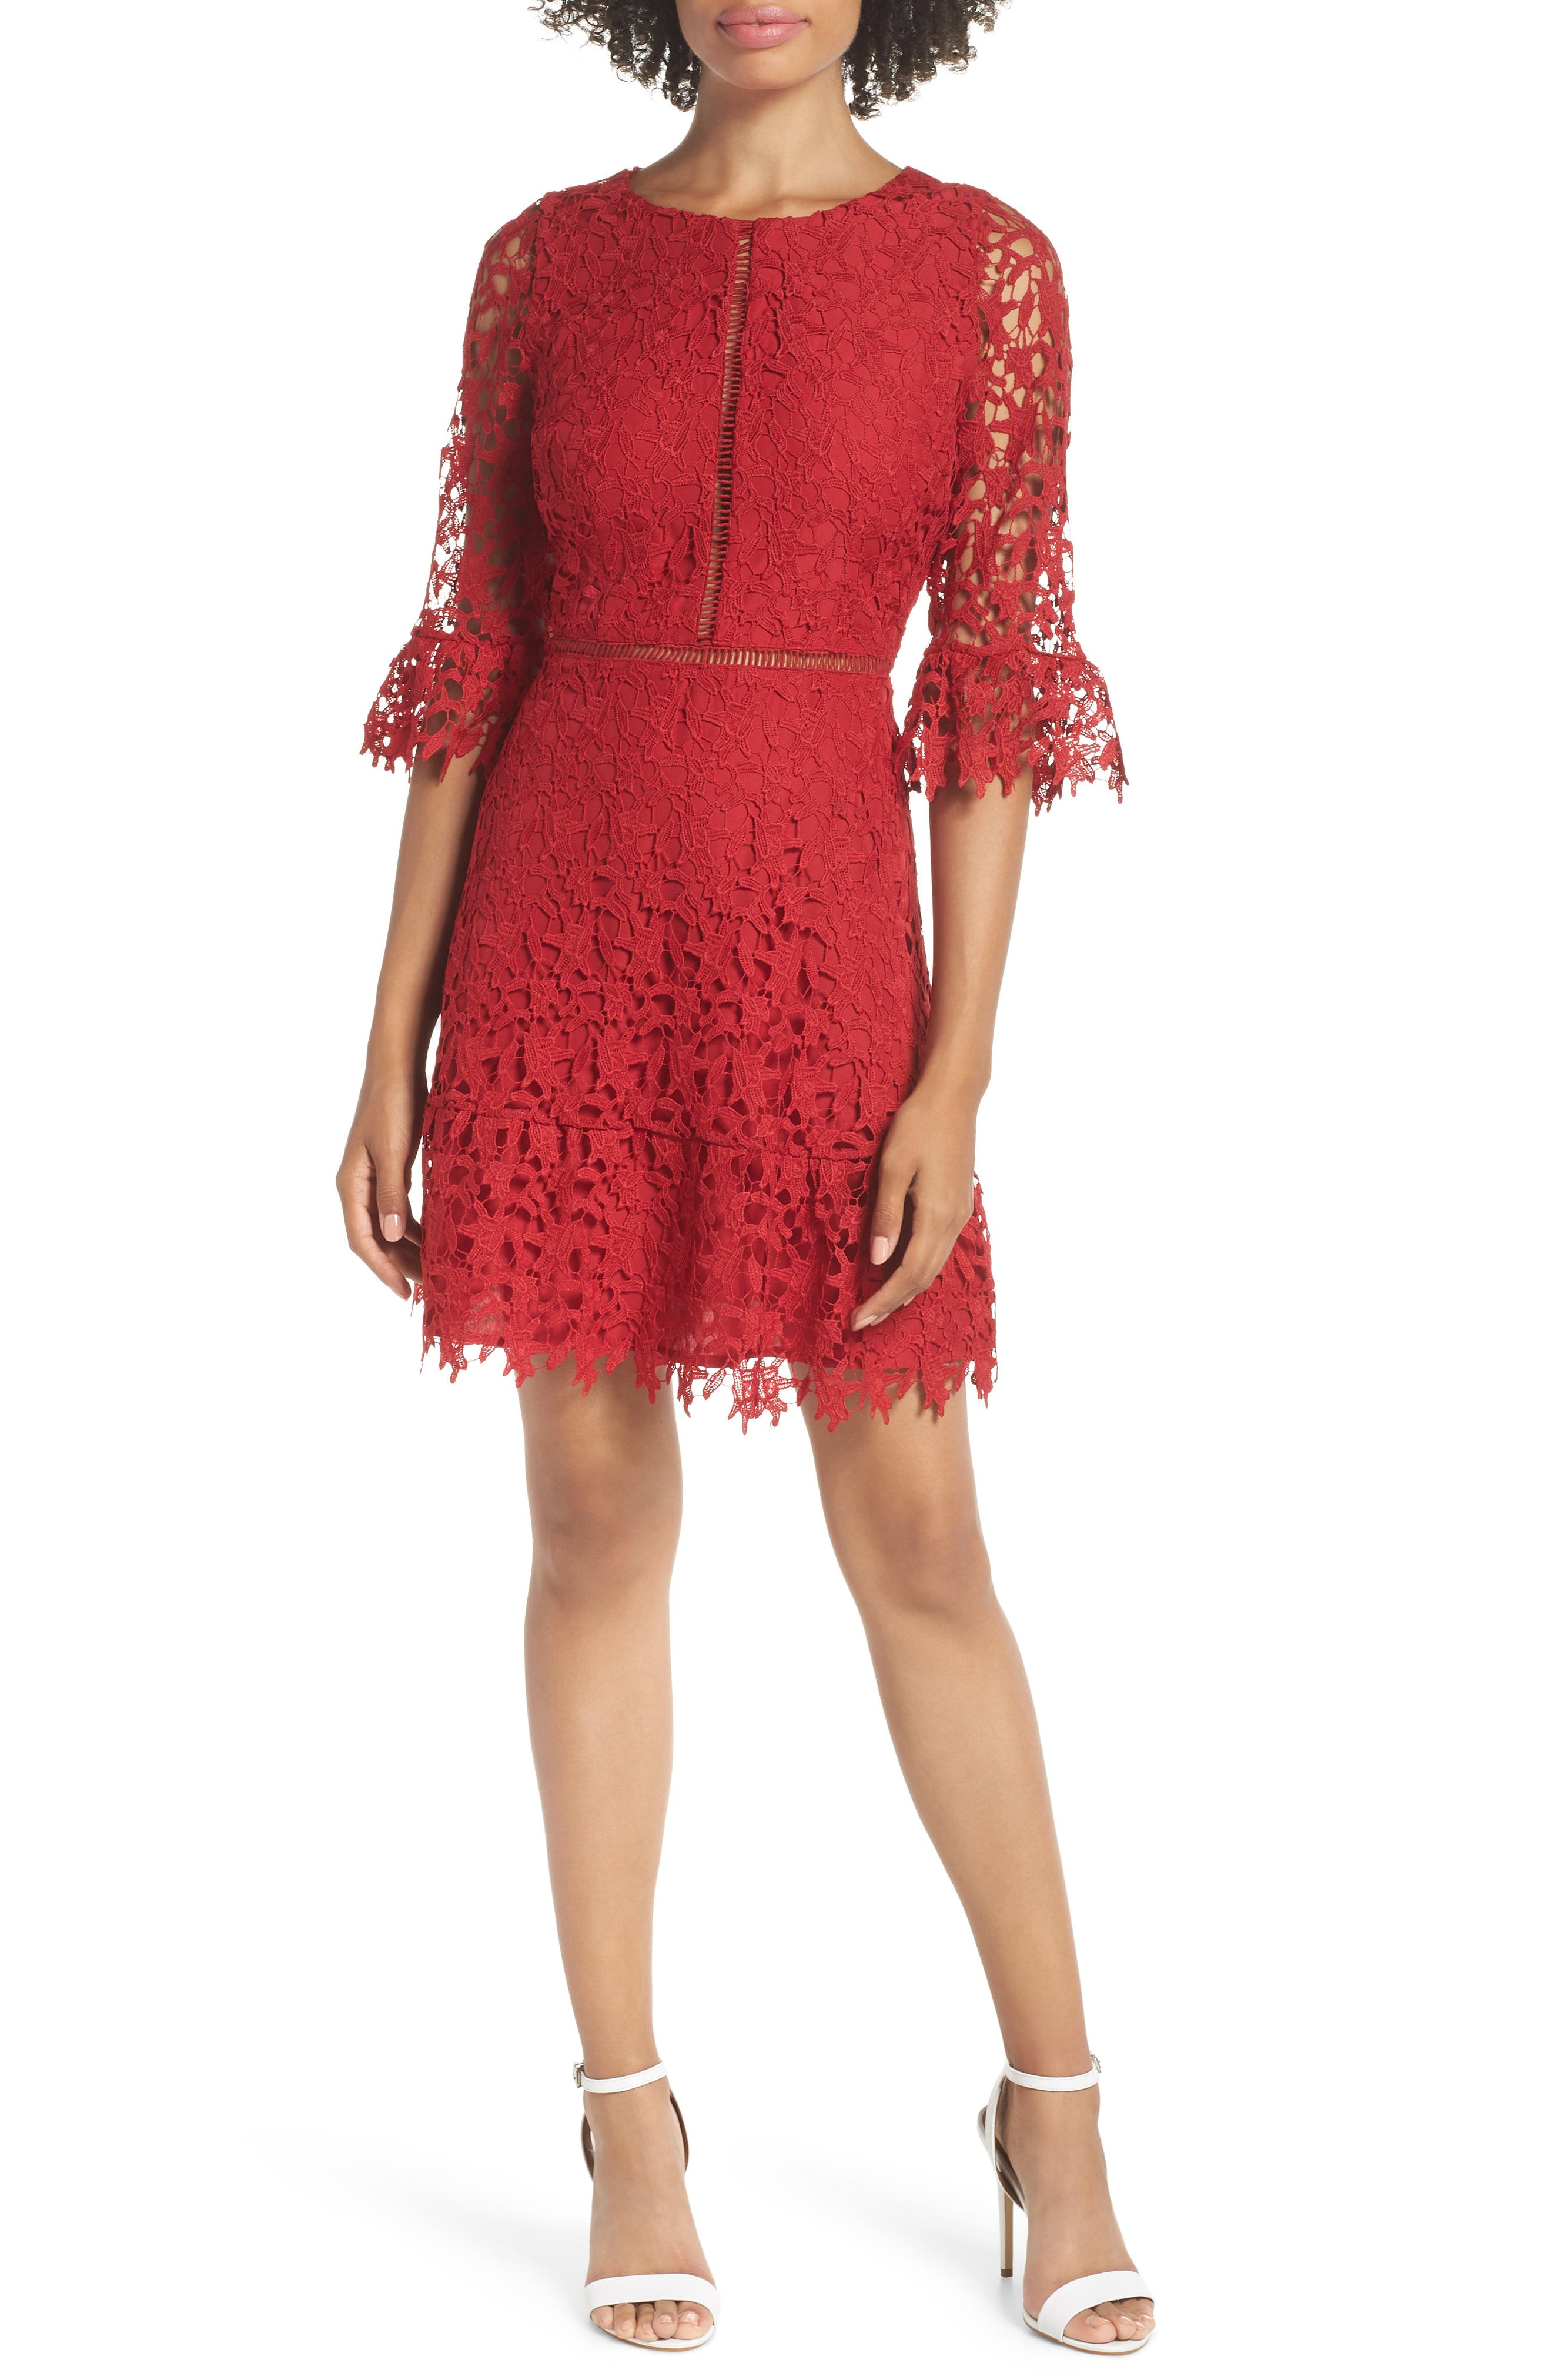 Bb Dakota In The Moment Lace Dress, Red